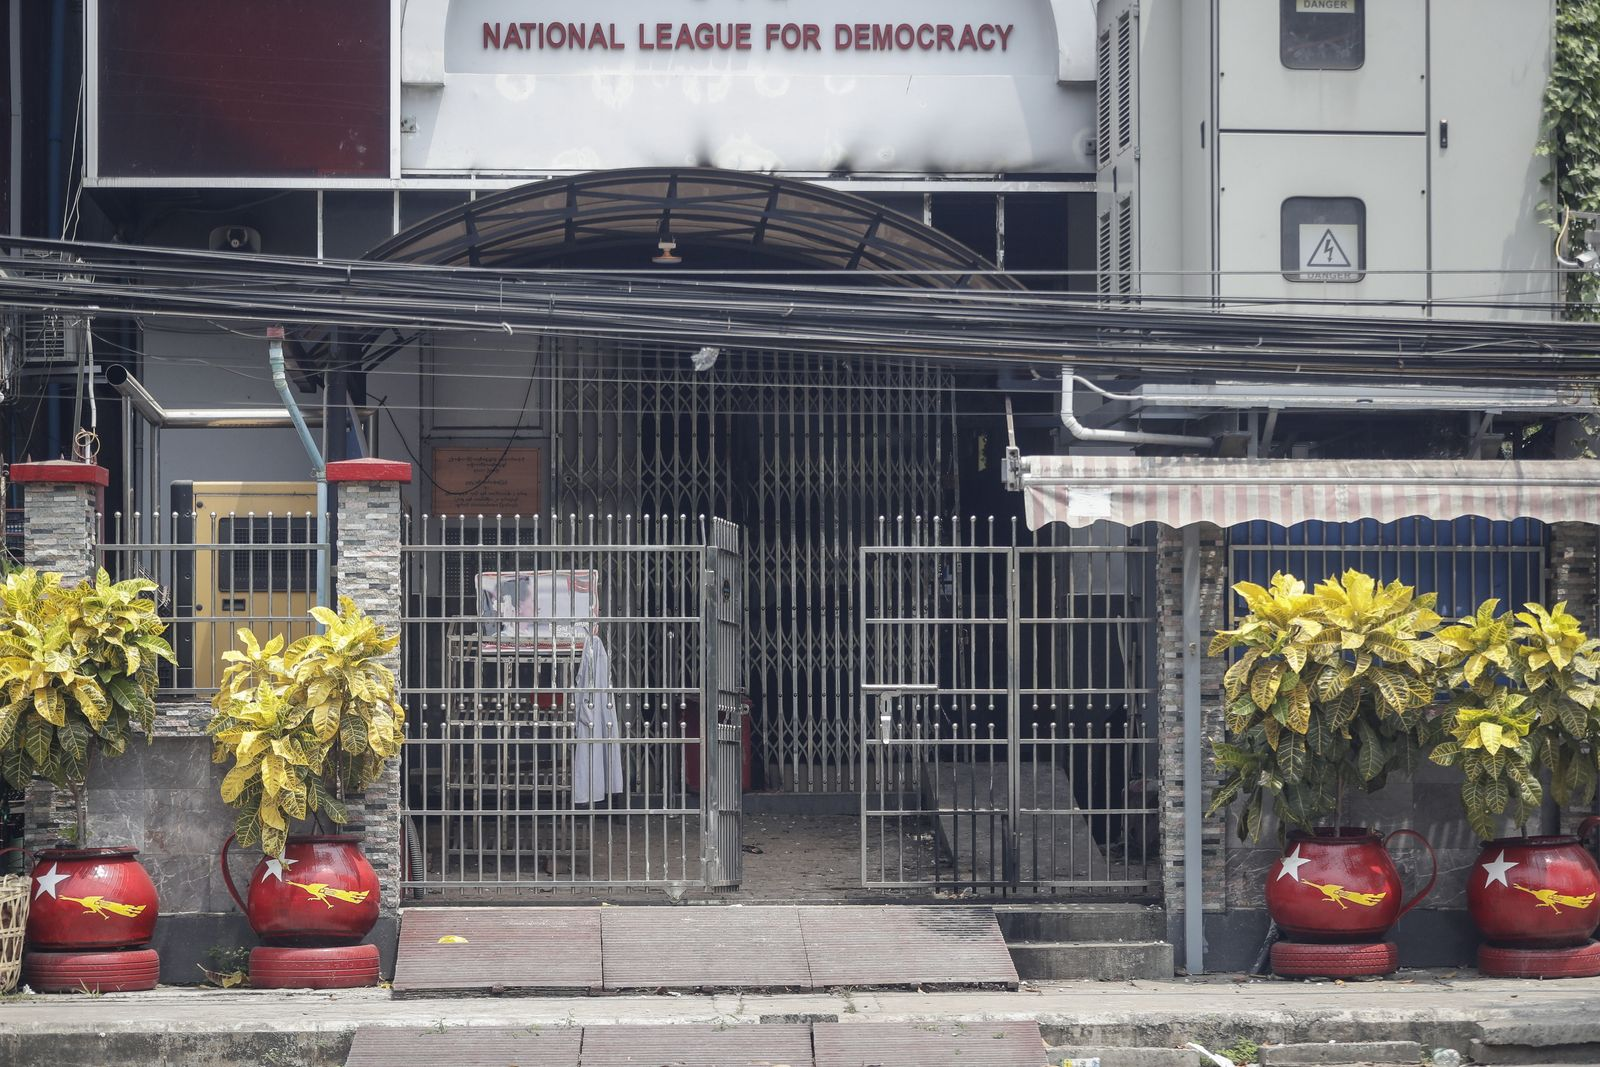 National League for Democracy headquarters attacked in Yangon